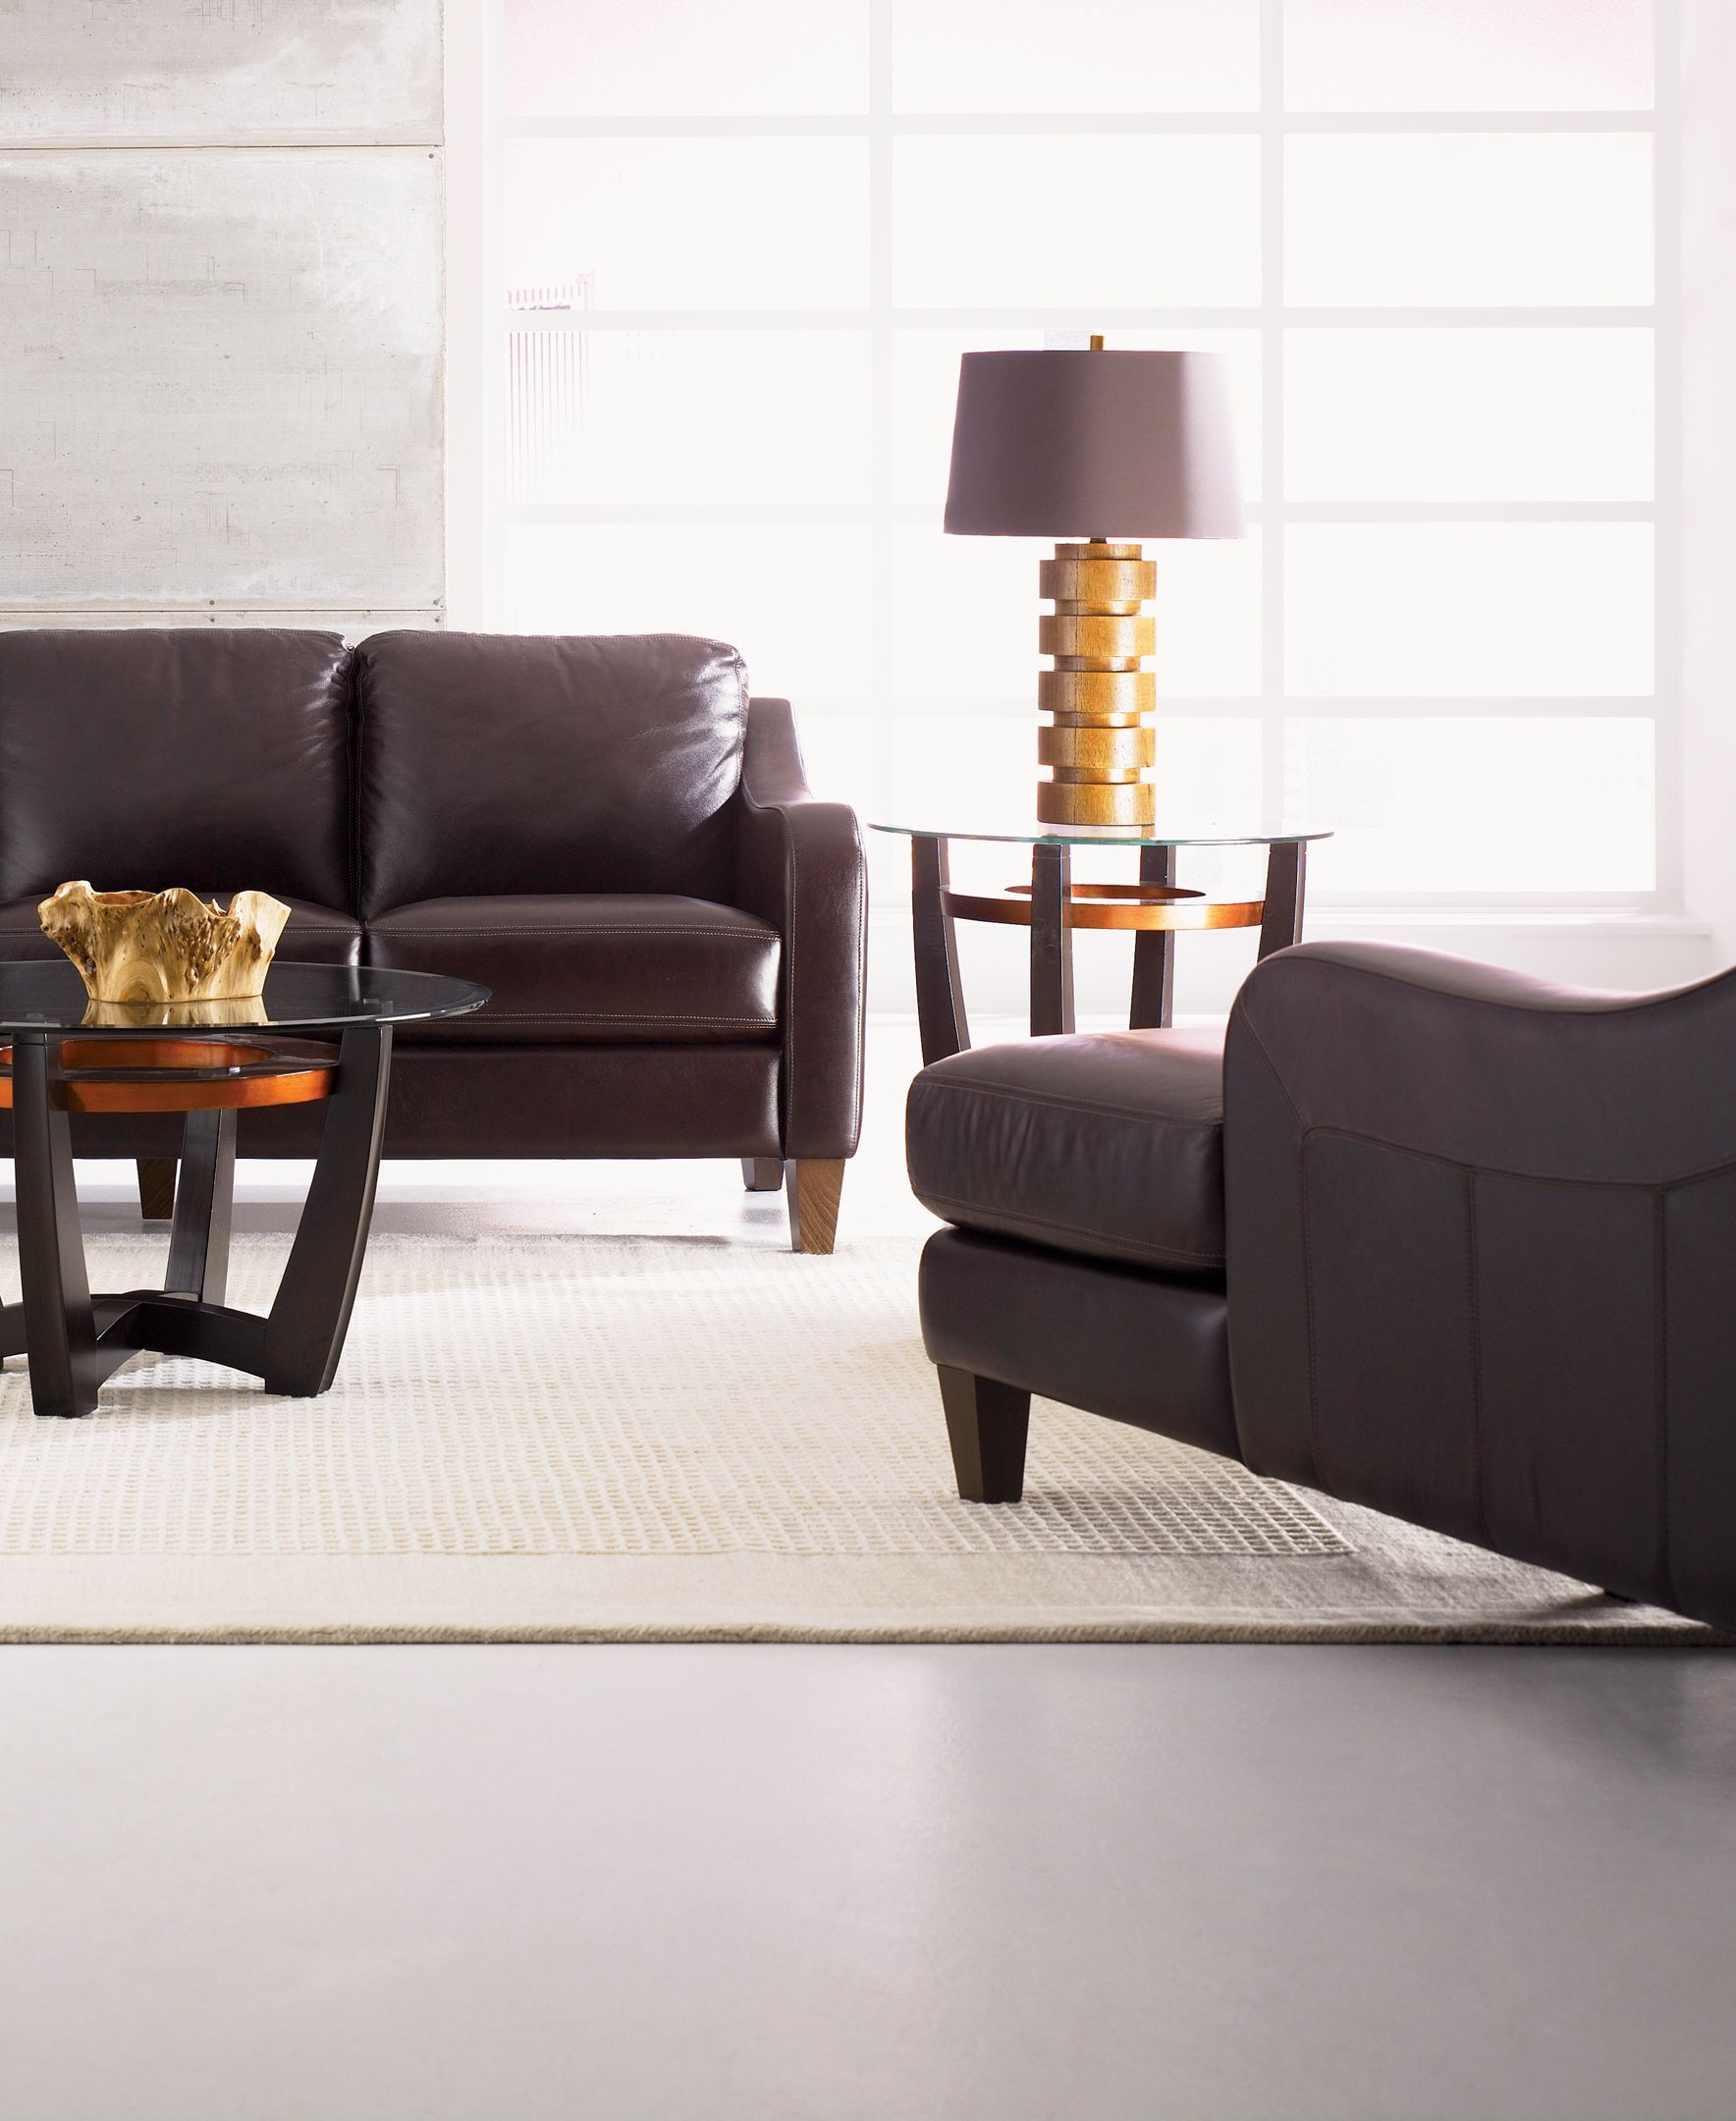 Elation 2 Piece Set Round Coffee Table And End Table Round Coffee Table Coffee Table Furniture [ 2160 x 1768 Pixel ]